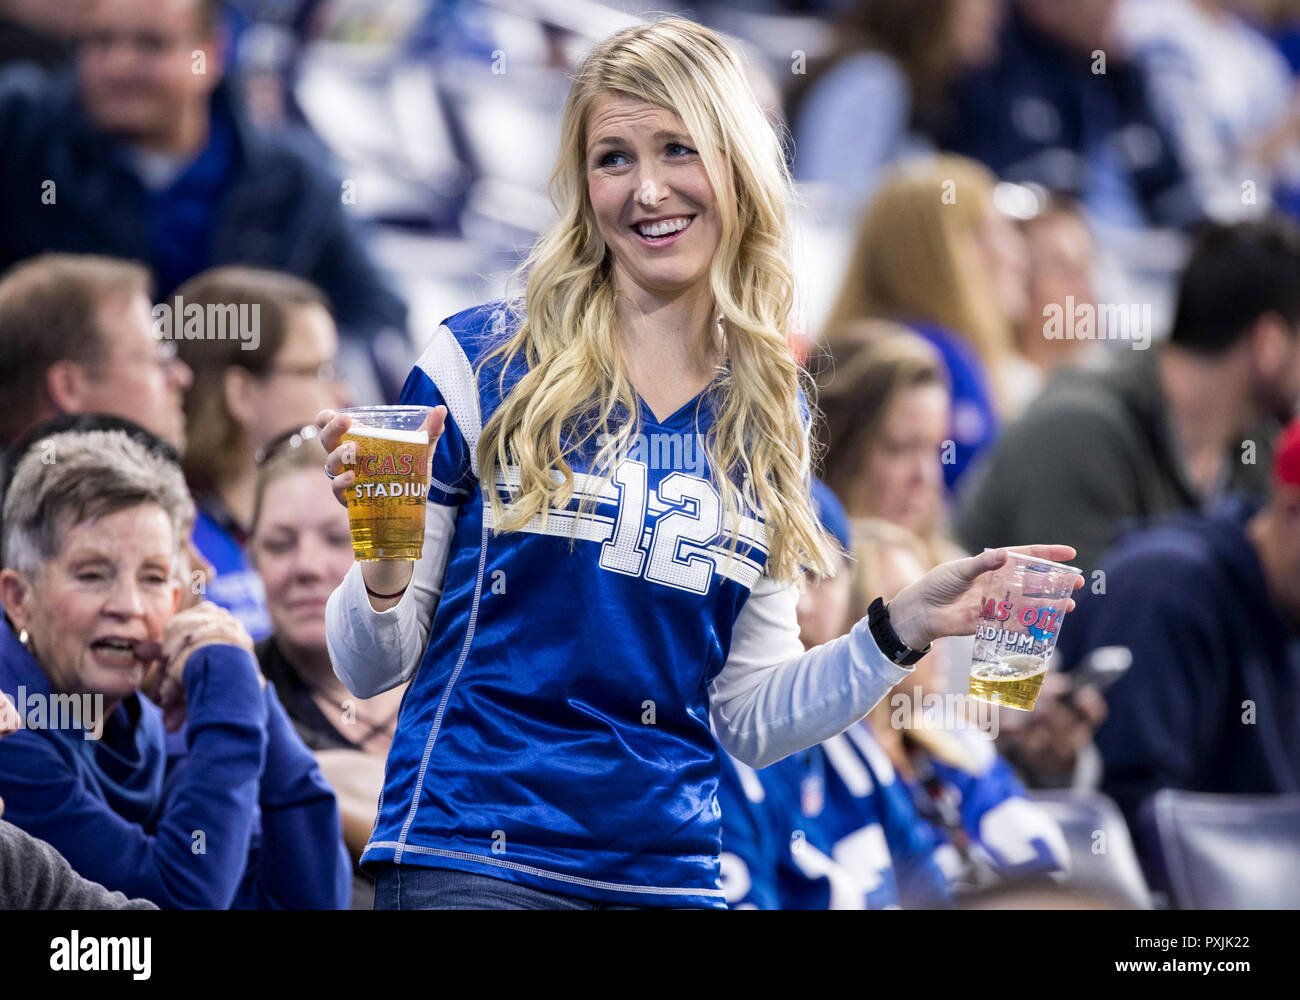 Indianapolis, Indiana, USA. 21st Oct, 2018. Indianapolis Colts fan